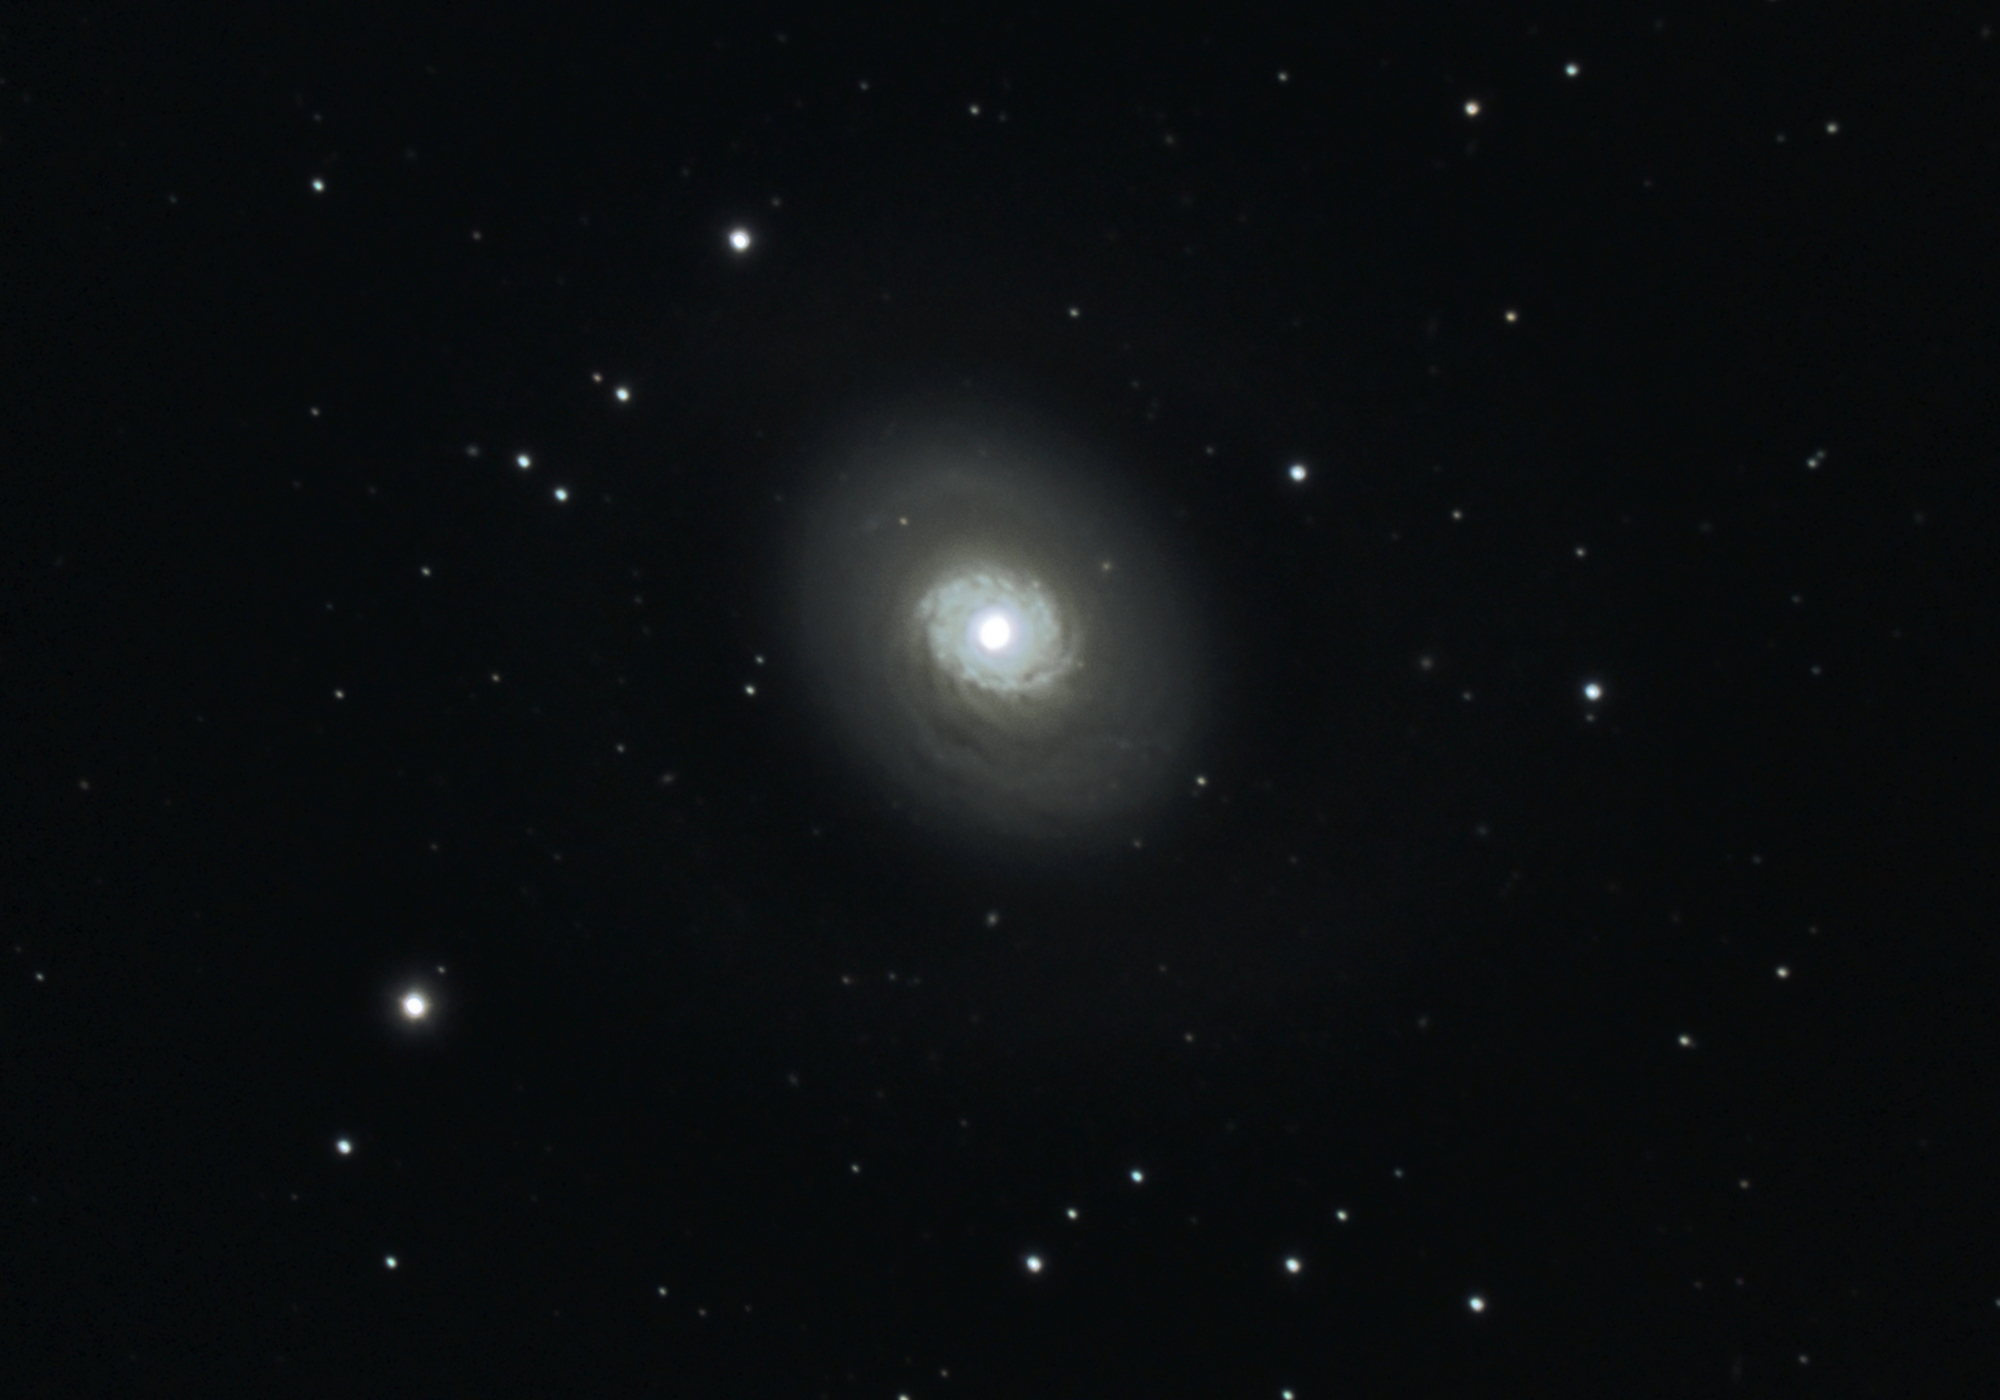 Messier 94 – The Cats Eye Galaxy